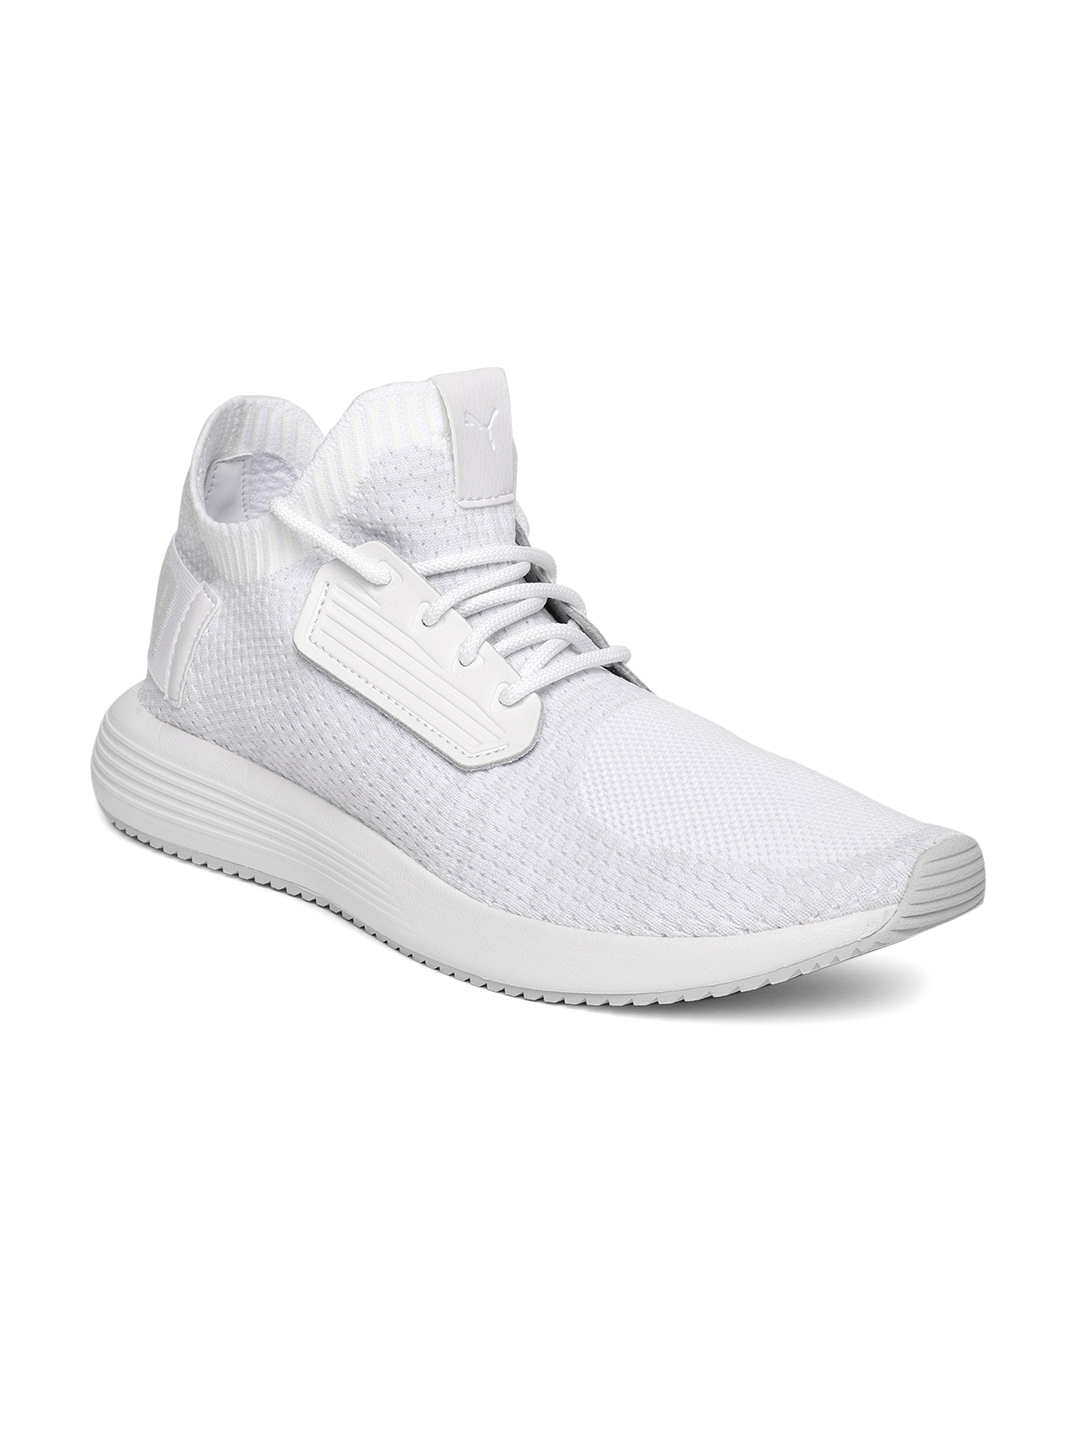 Buy Puma Men White Uprise Knit Sneakers - Casual Shoes for Men ... a4687e09e